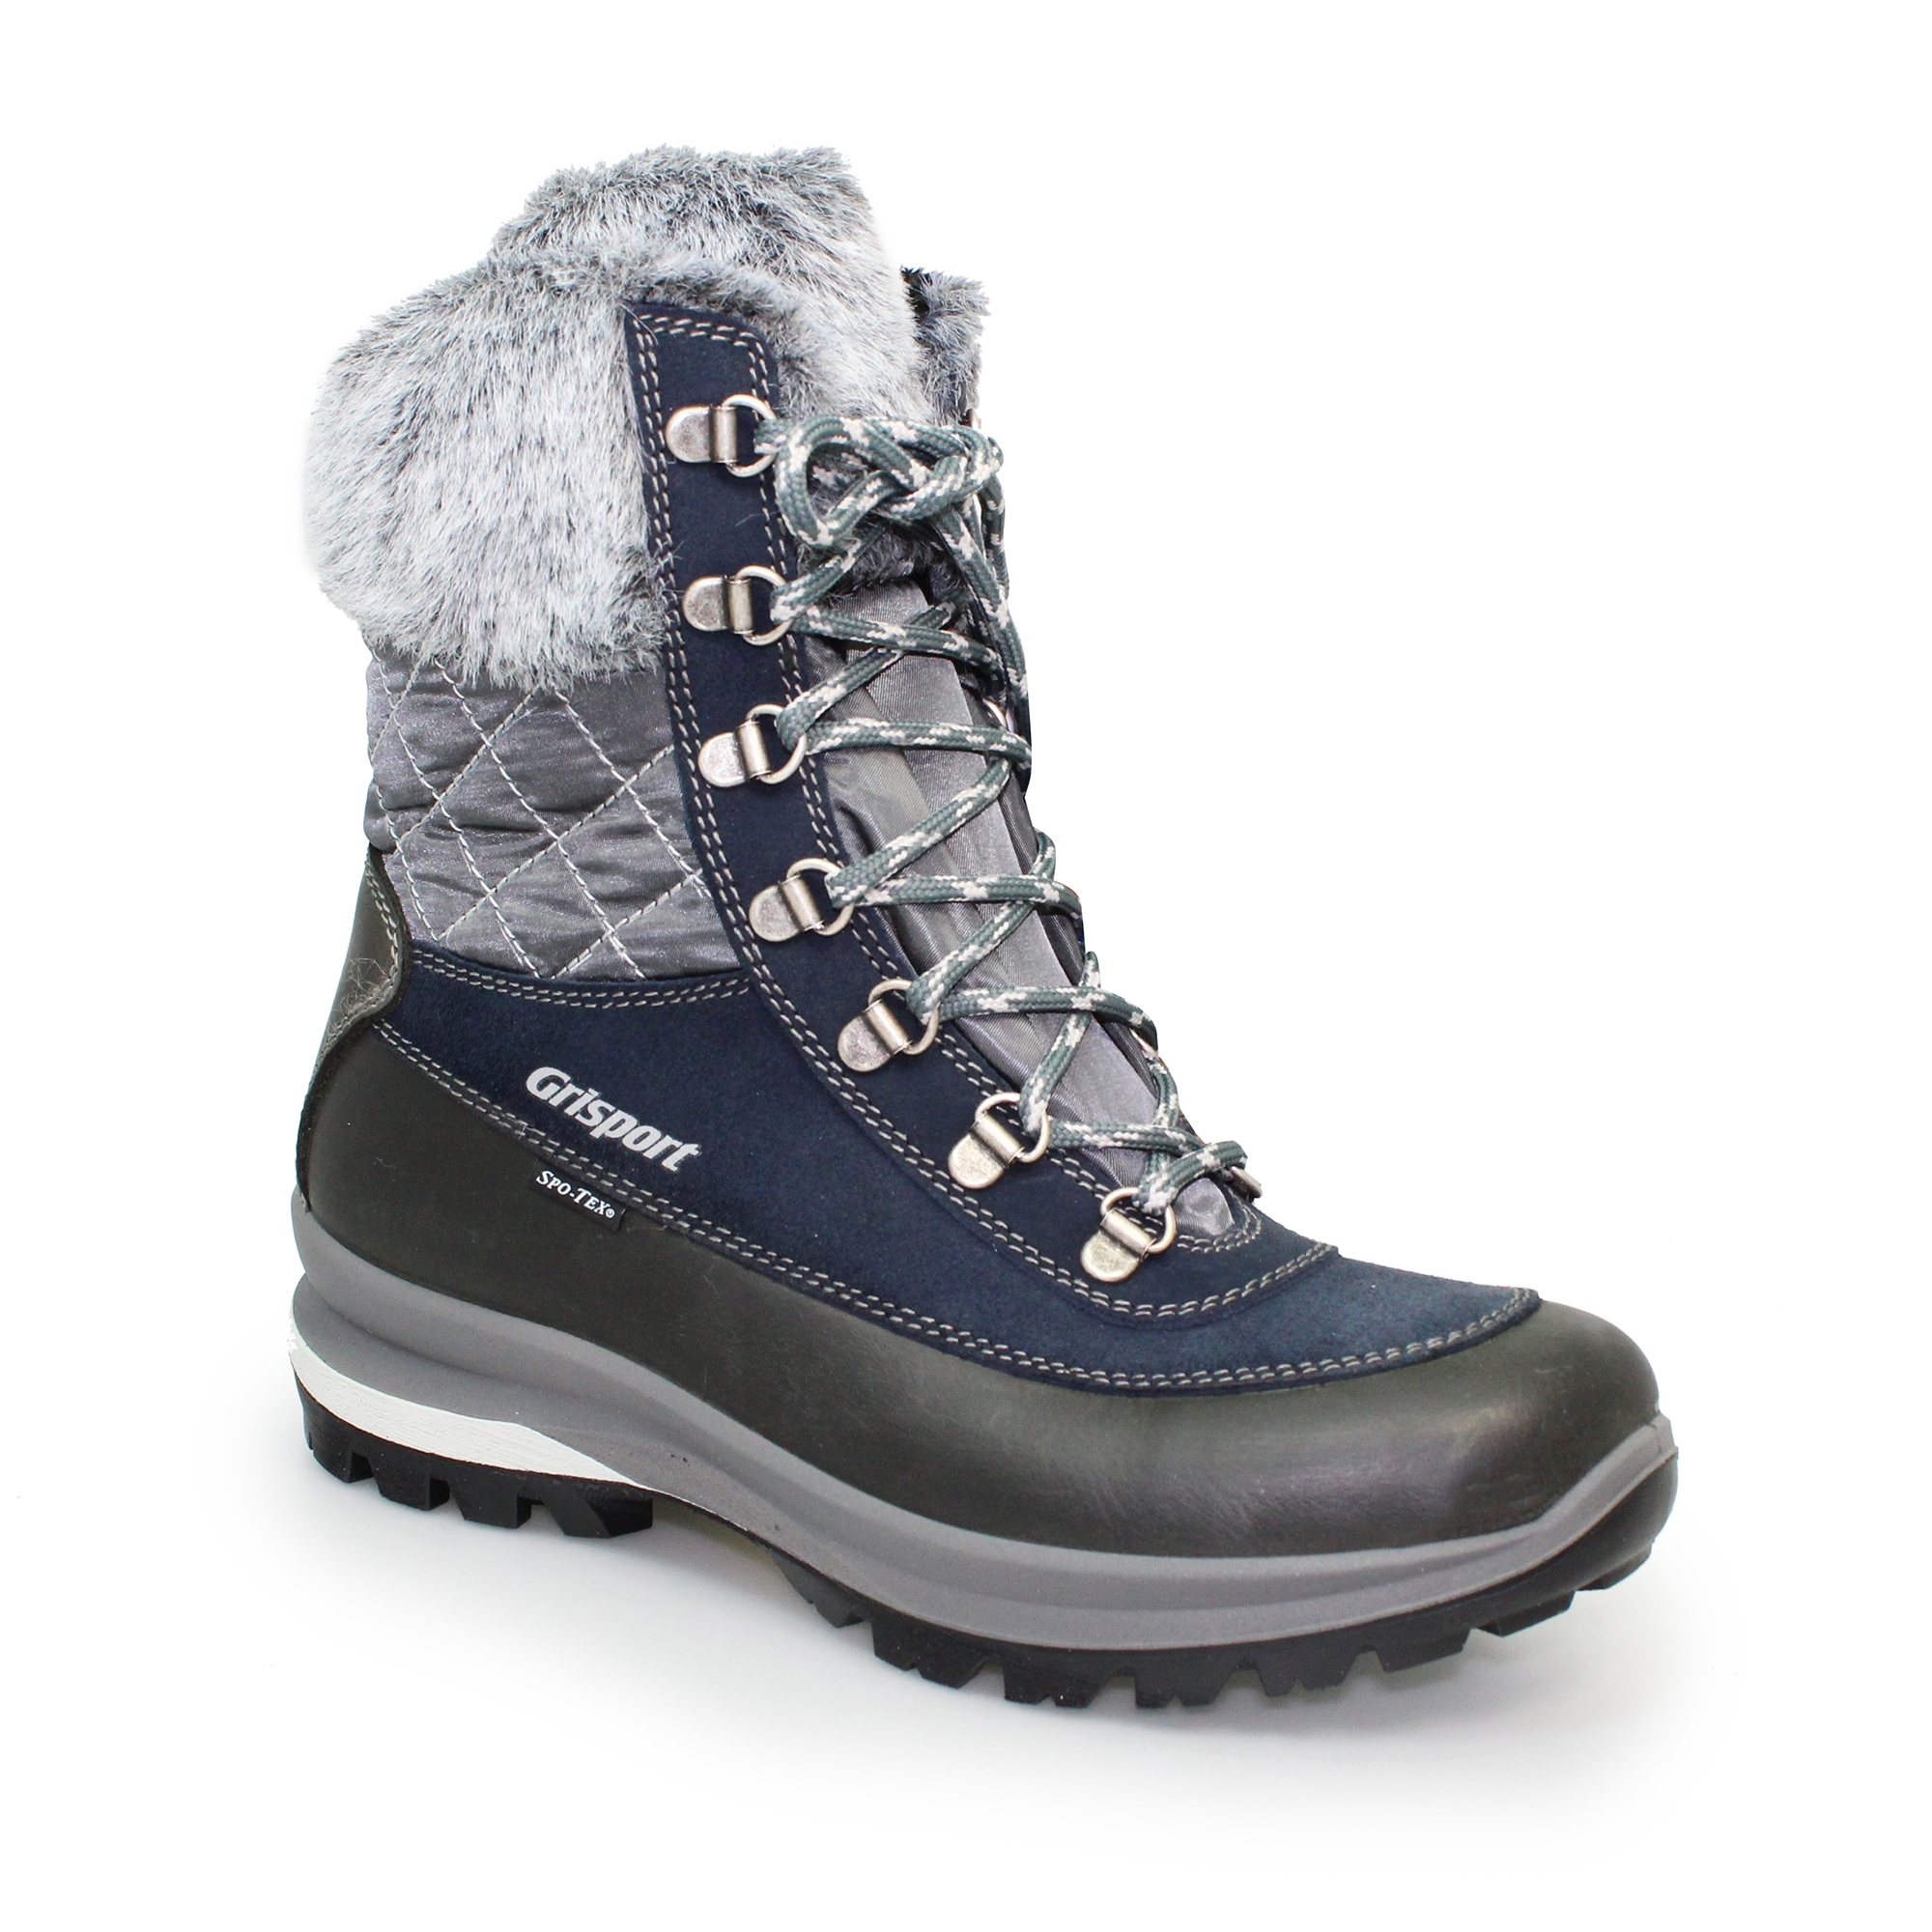 rollo ladies trekking boot